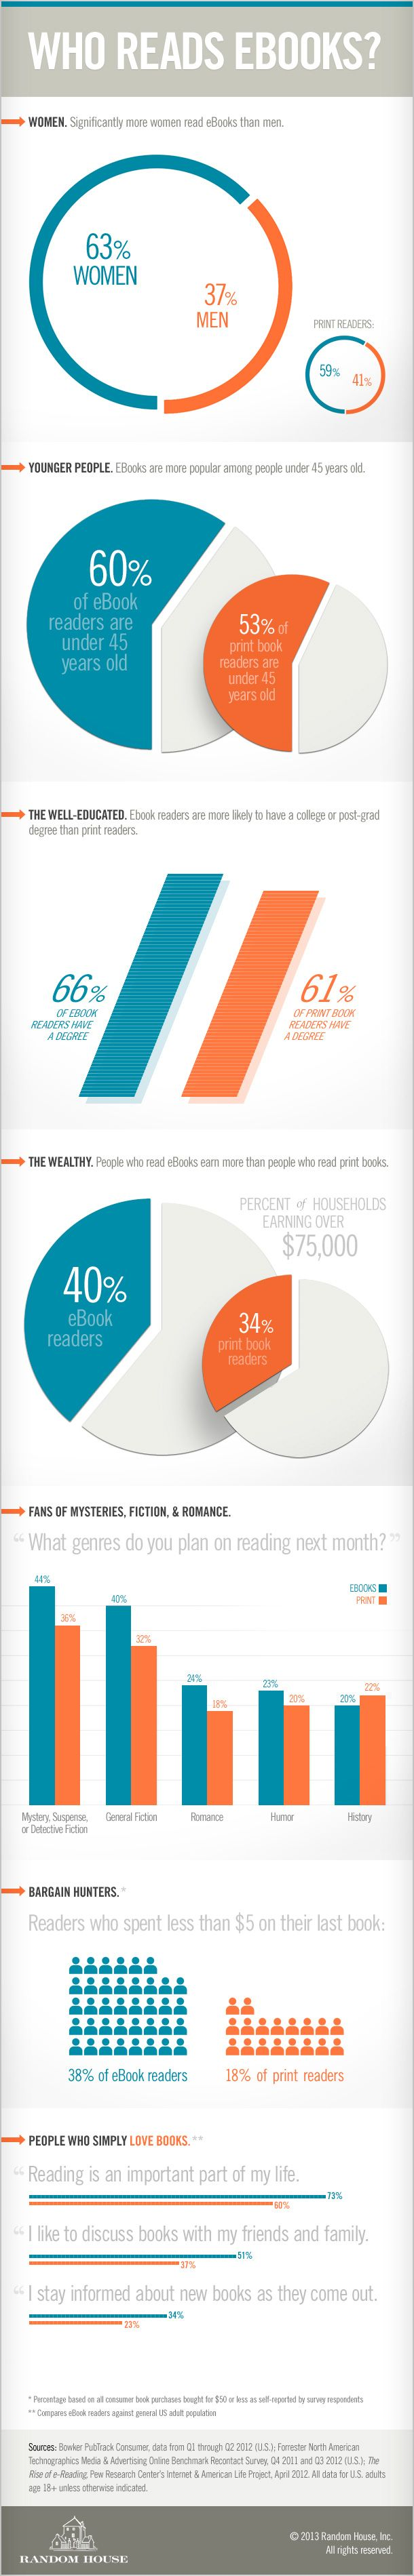 who reads ebooks? #infographic